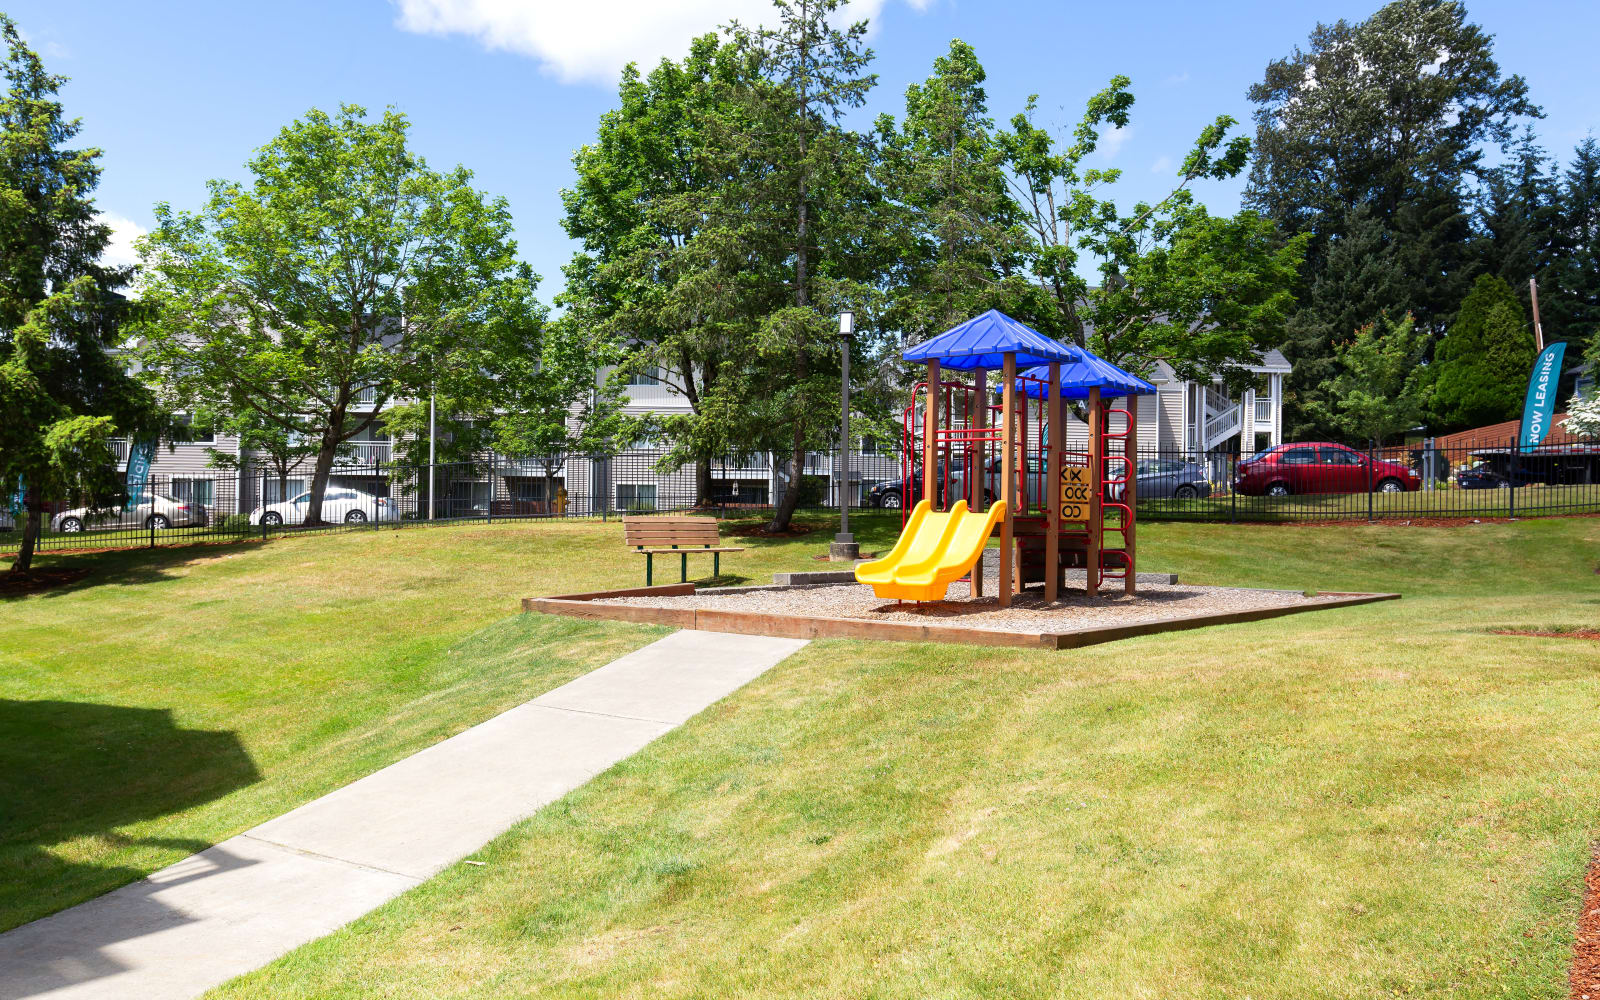 Playground on a beautiful day at Alaire Apartments in Renton, Washington